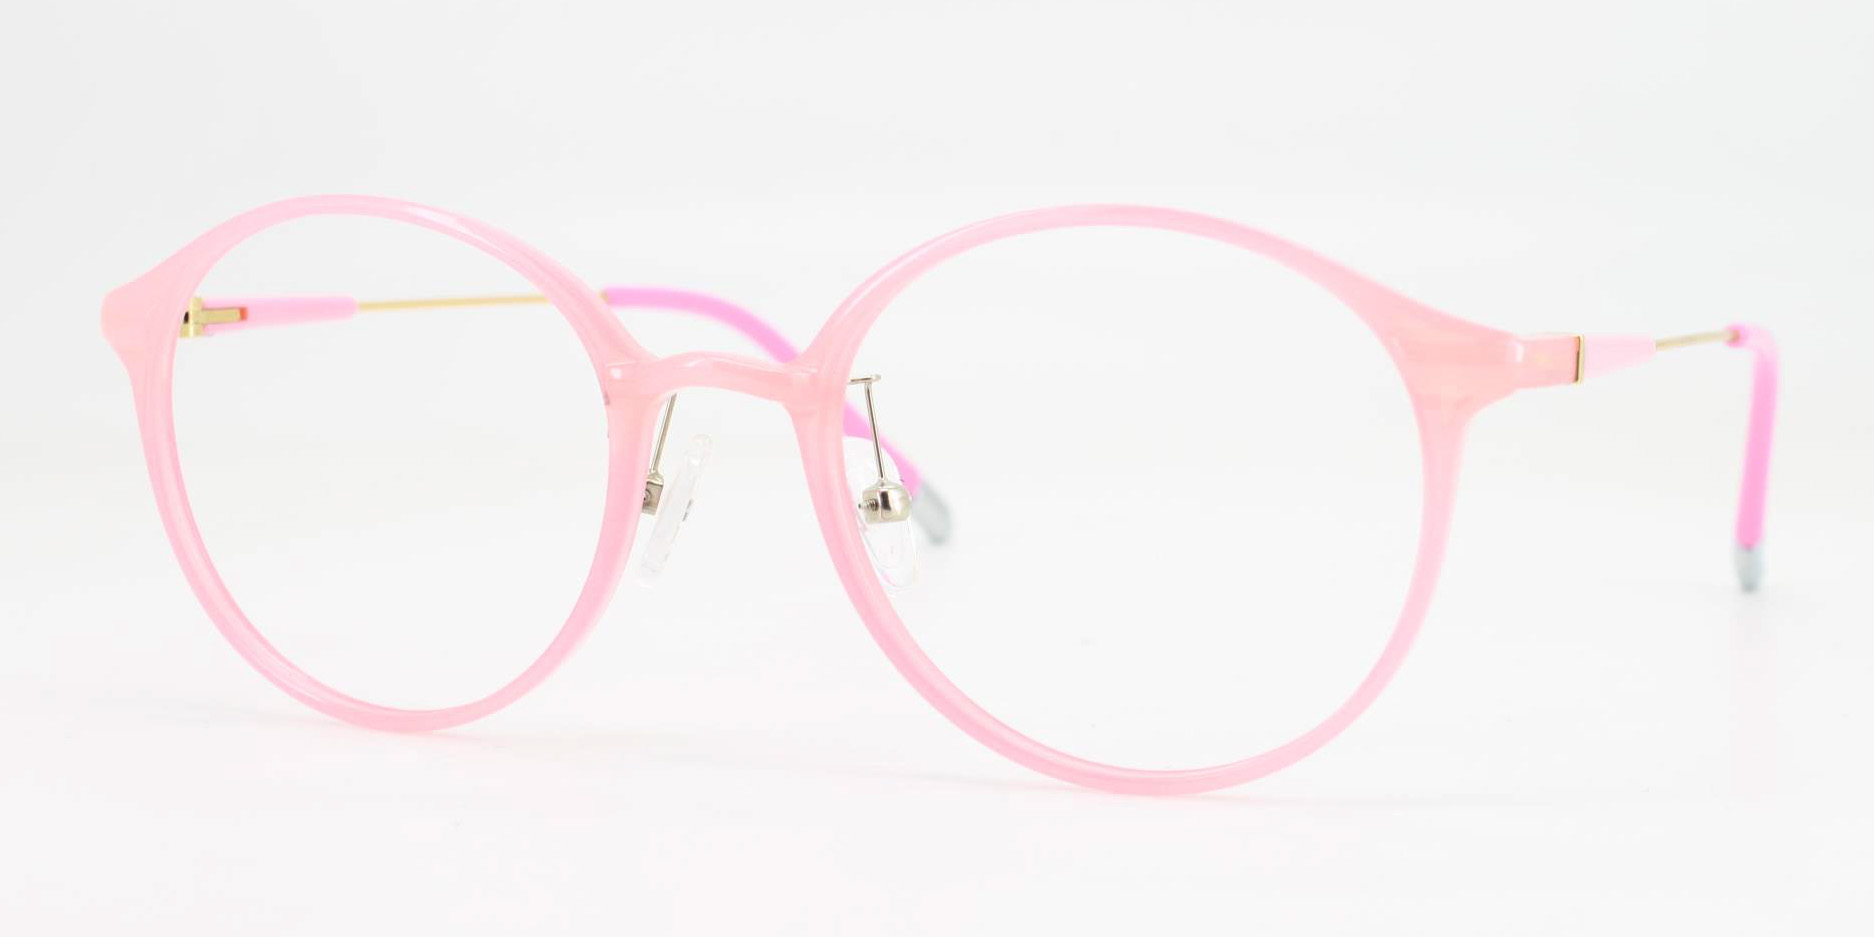 pink Color Product Image